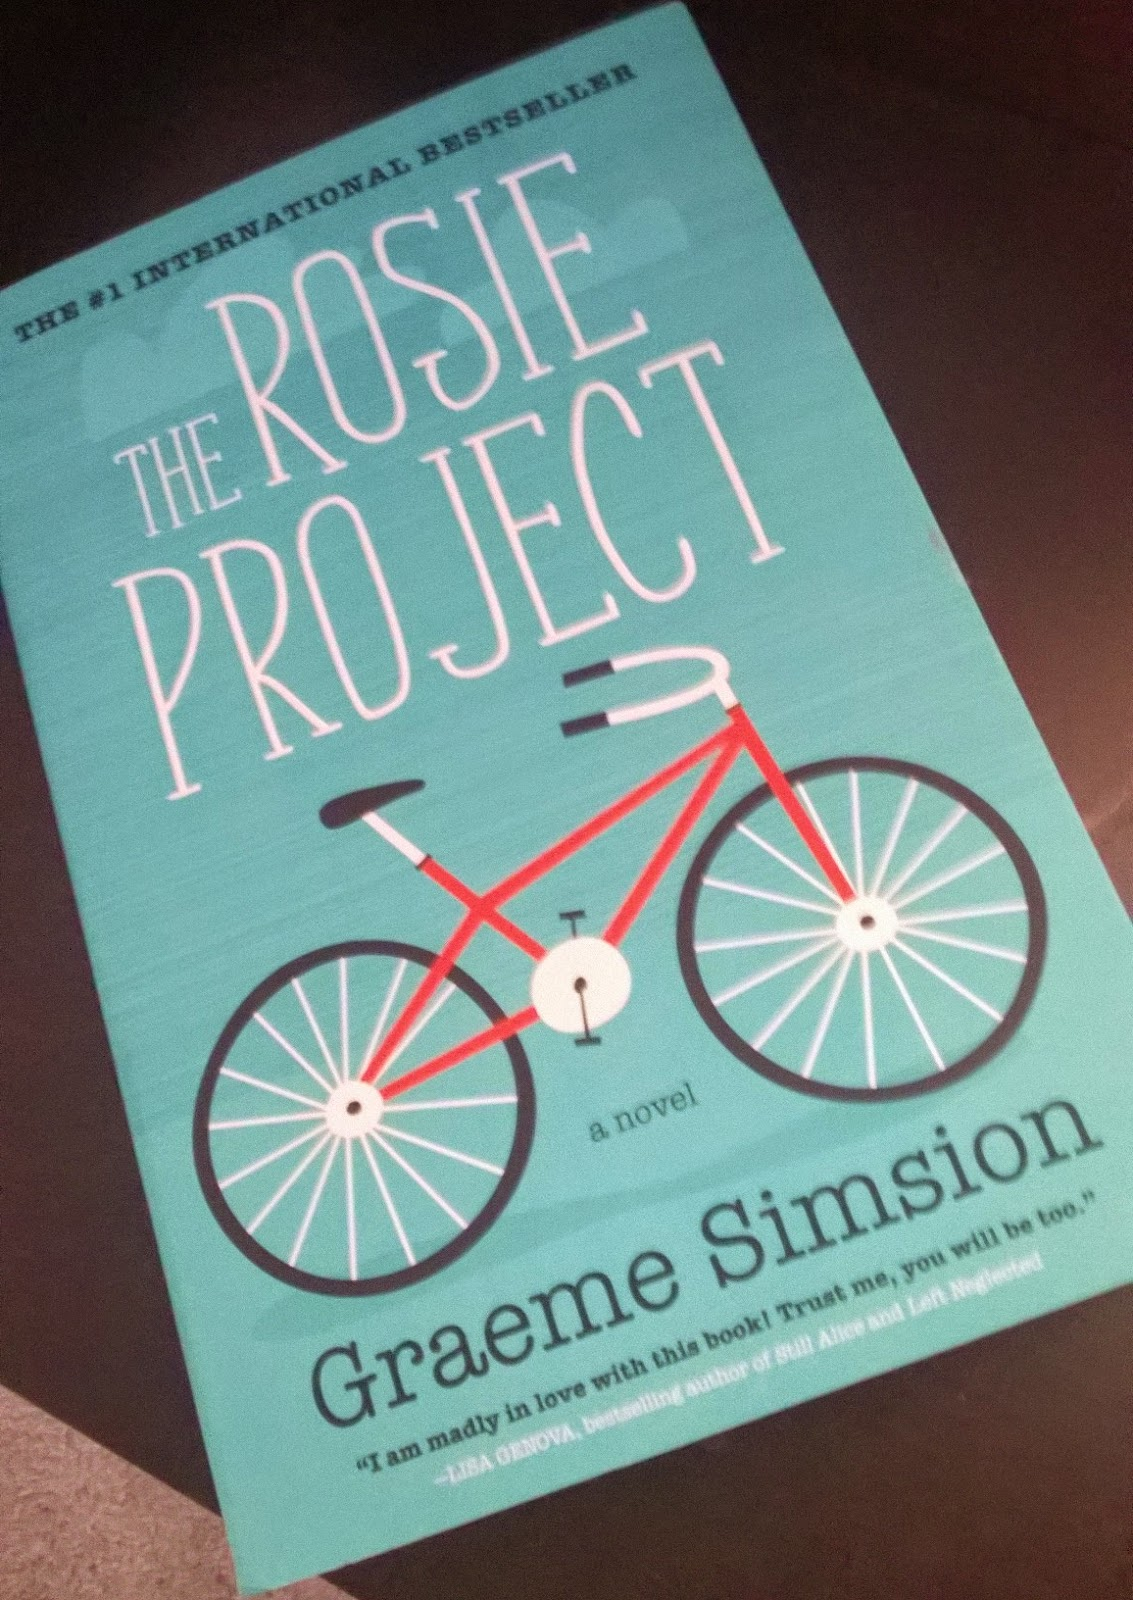 I Figured I'd Get Started On Book Two Right Away Up Next Is Graeme  Simsion's The Rosie Project I'll Be Continuing This Series With The Rosie  Effect For My